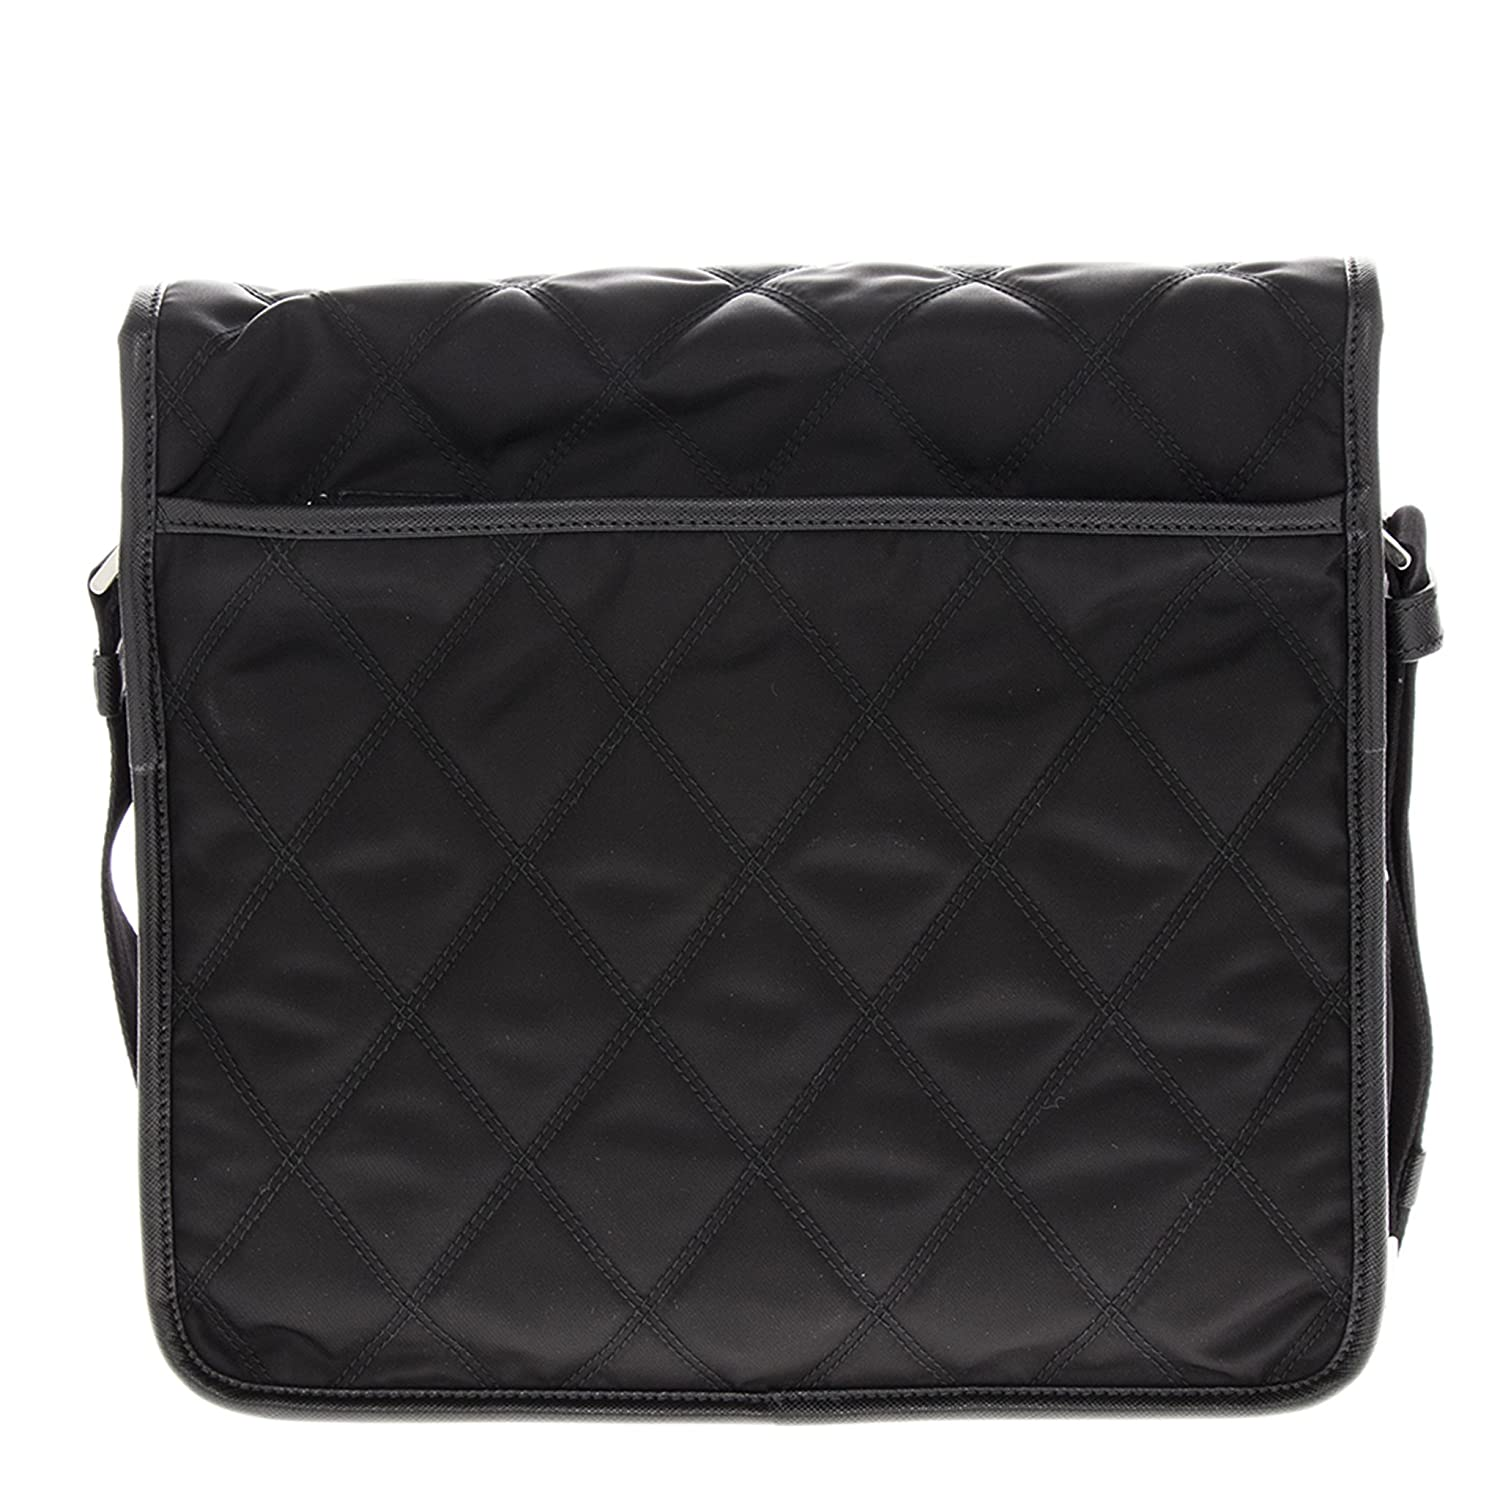 571be1f0903a Amazon.com  Prada Quilted Nylon Messenger Black  Shoes